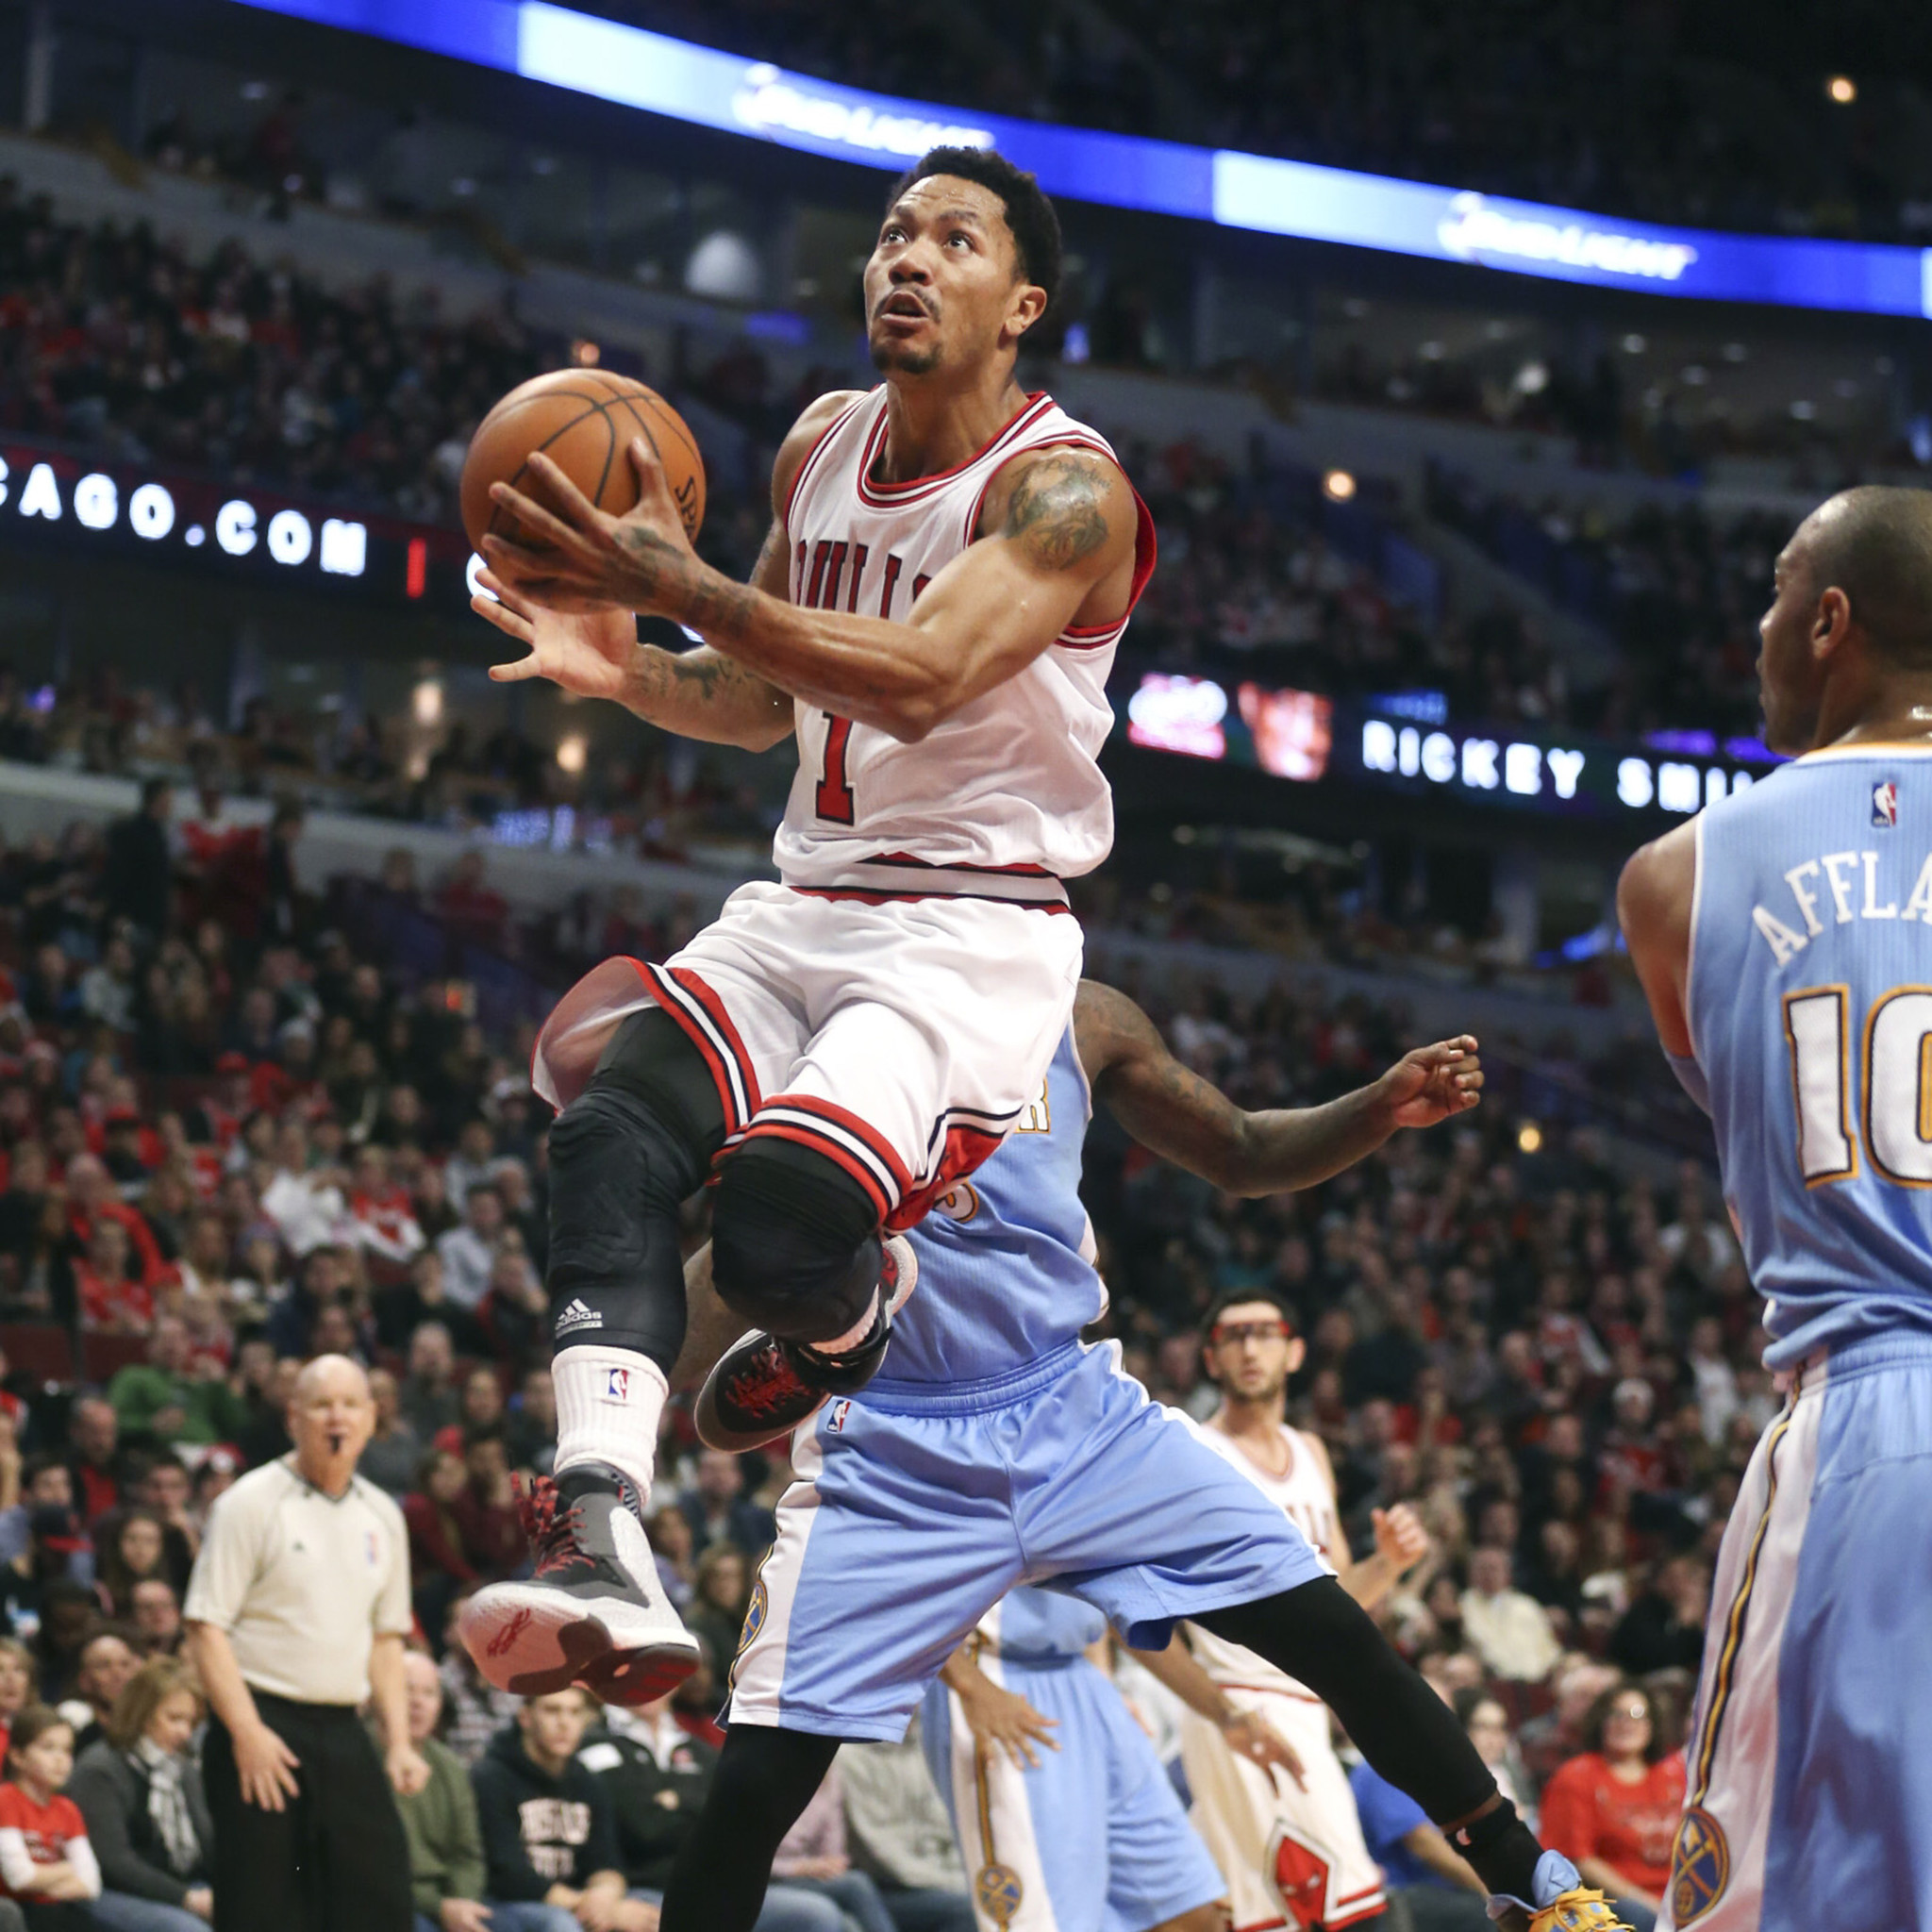 Derrick Rose another Chicago story of what might have been